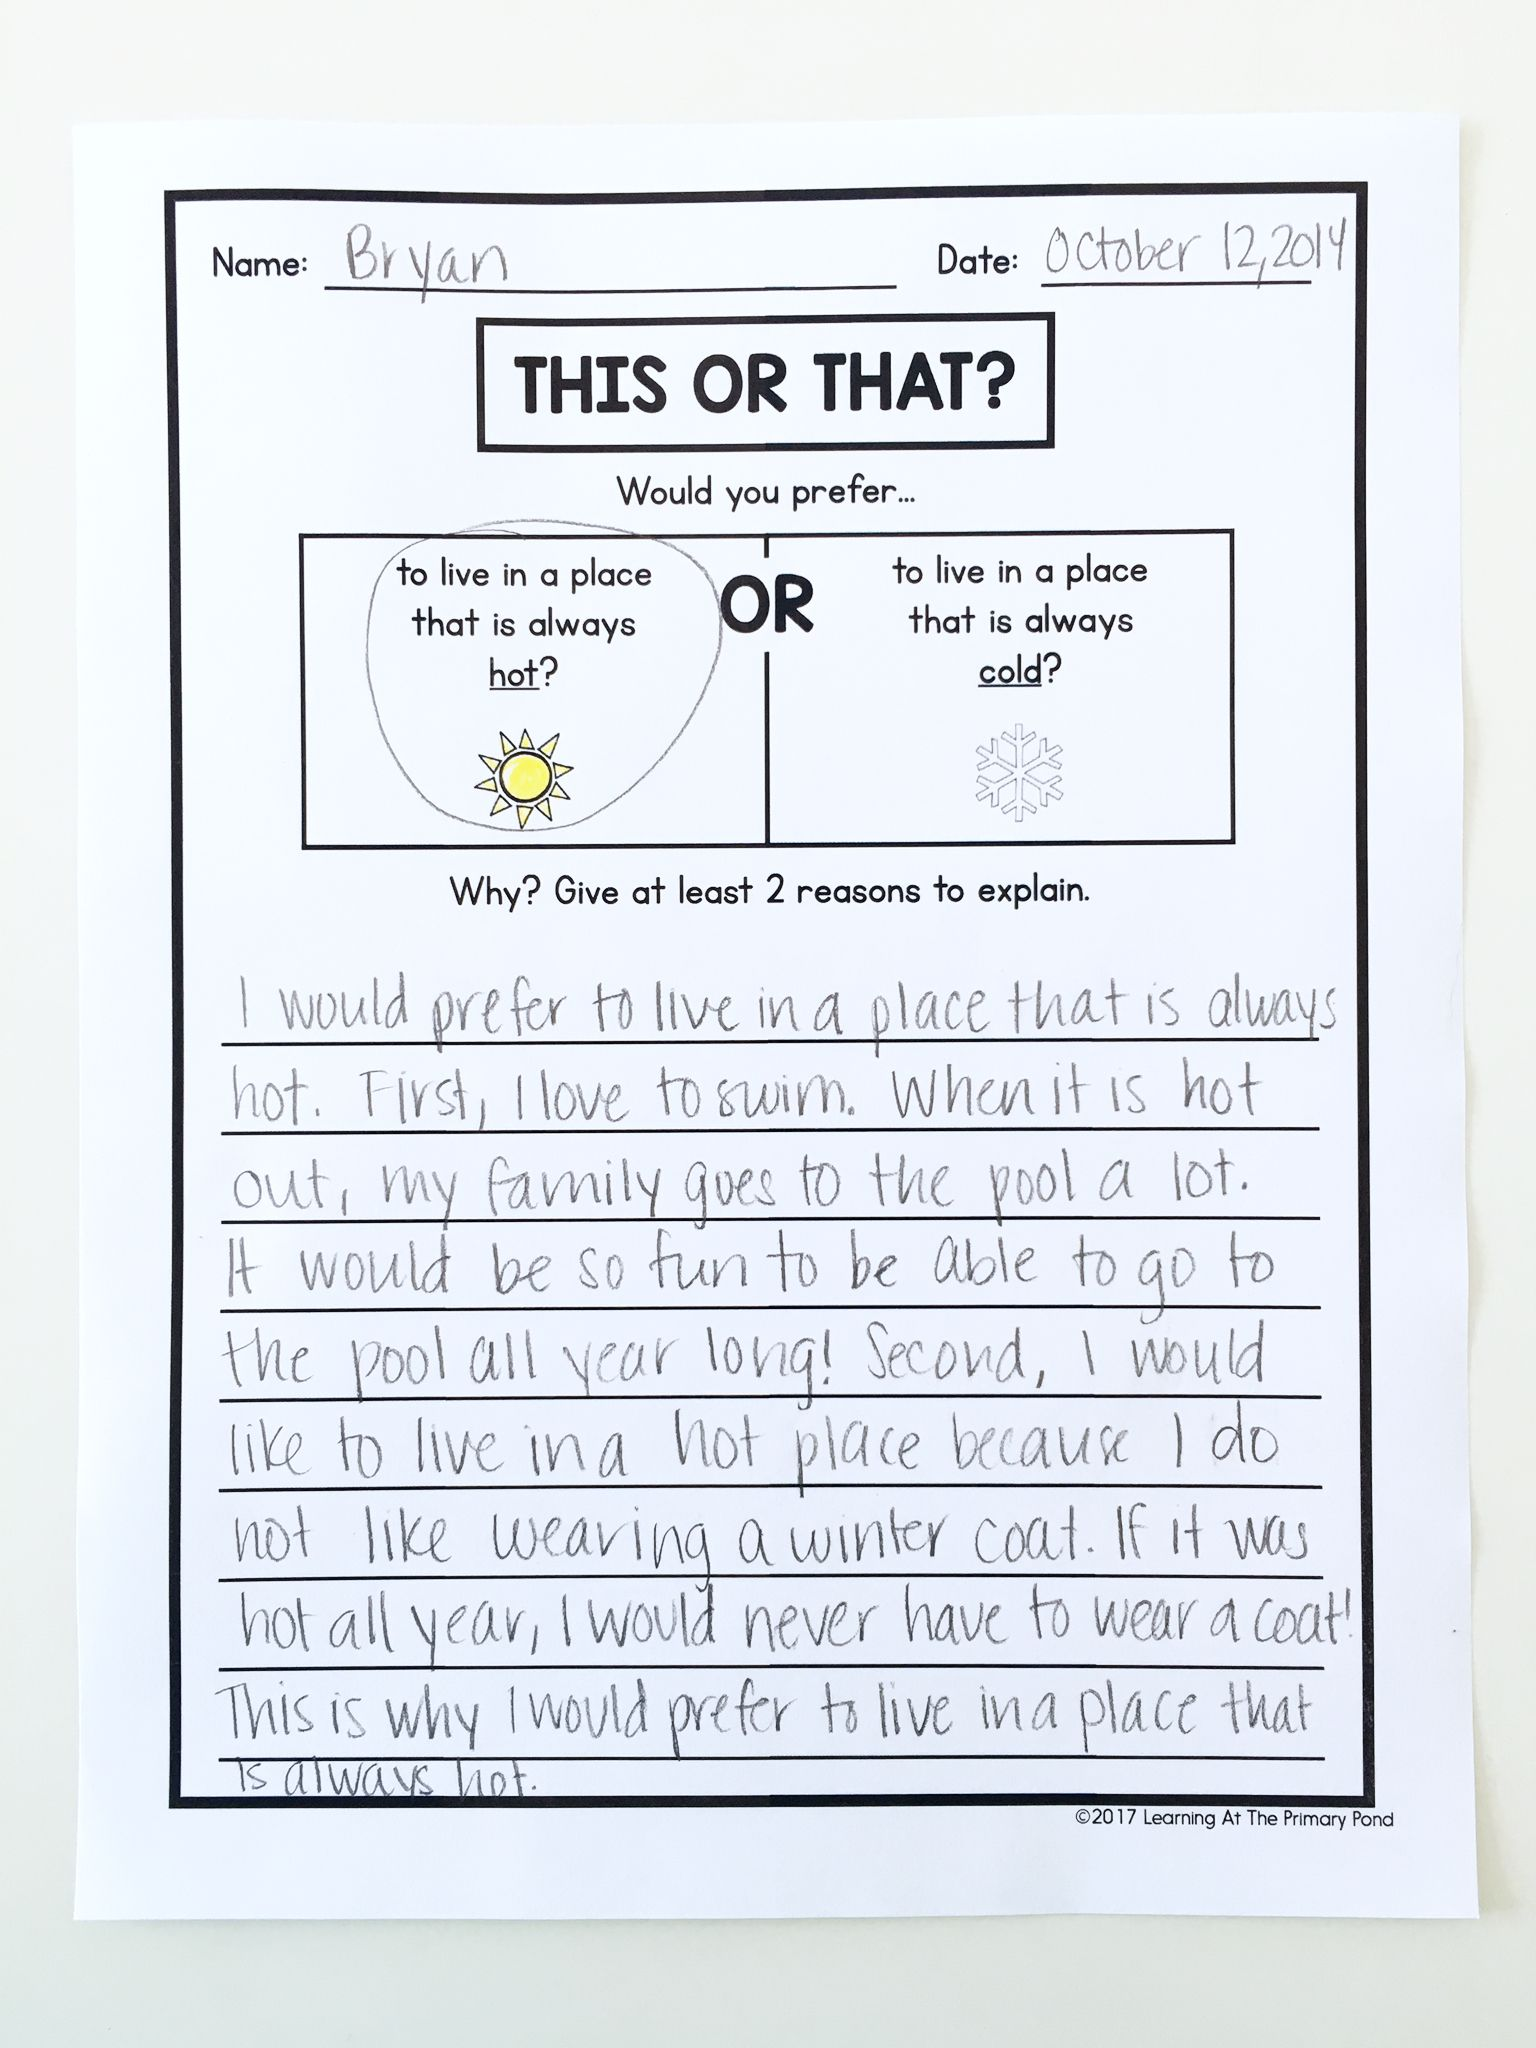 hight resolution of Opinion writing activity for second grade - kids choose between two options  and explain their pre…   Writing center